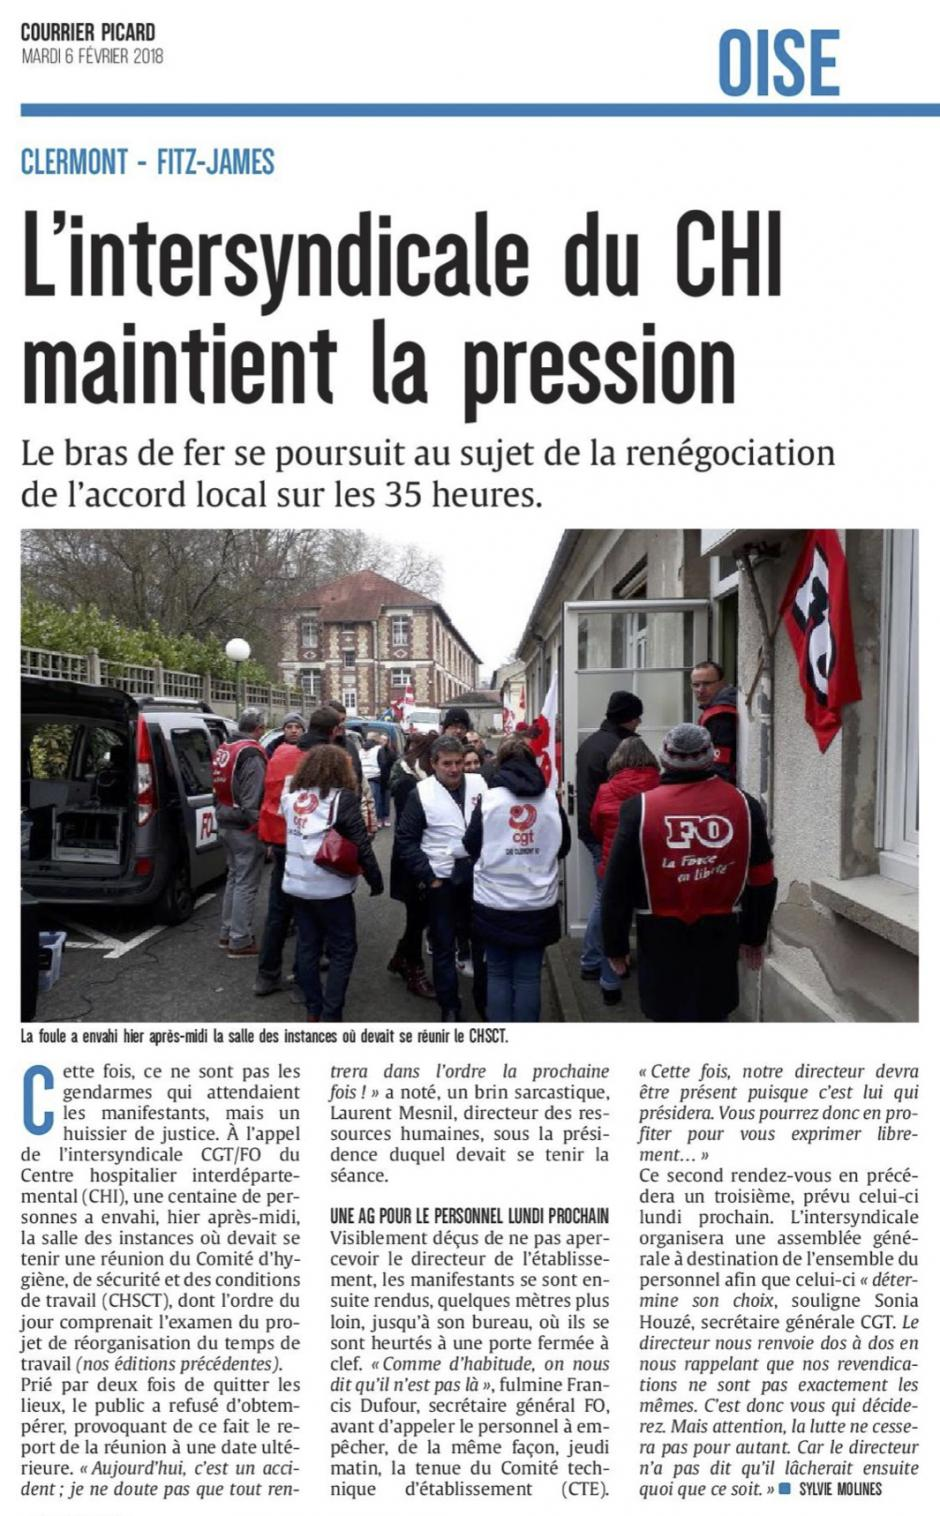 20180206-CP-Clermont-Fitz-James-L'intersyndicale du CHI maintient la pression